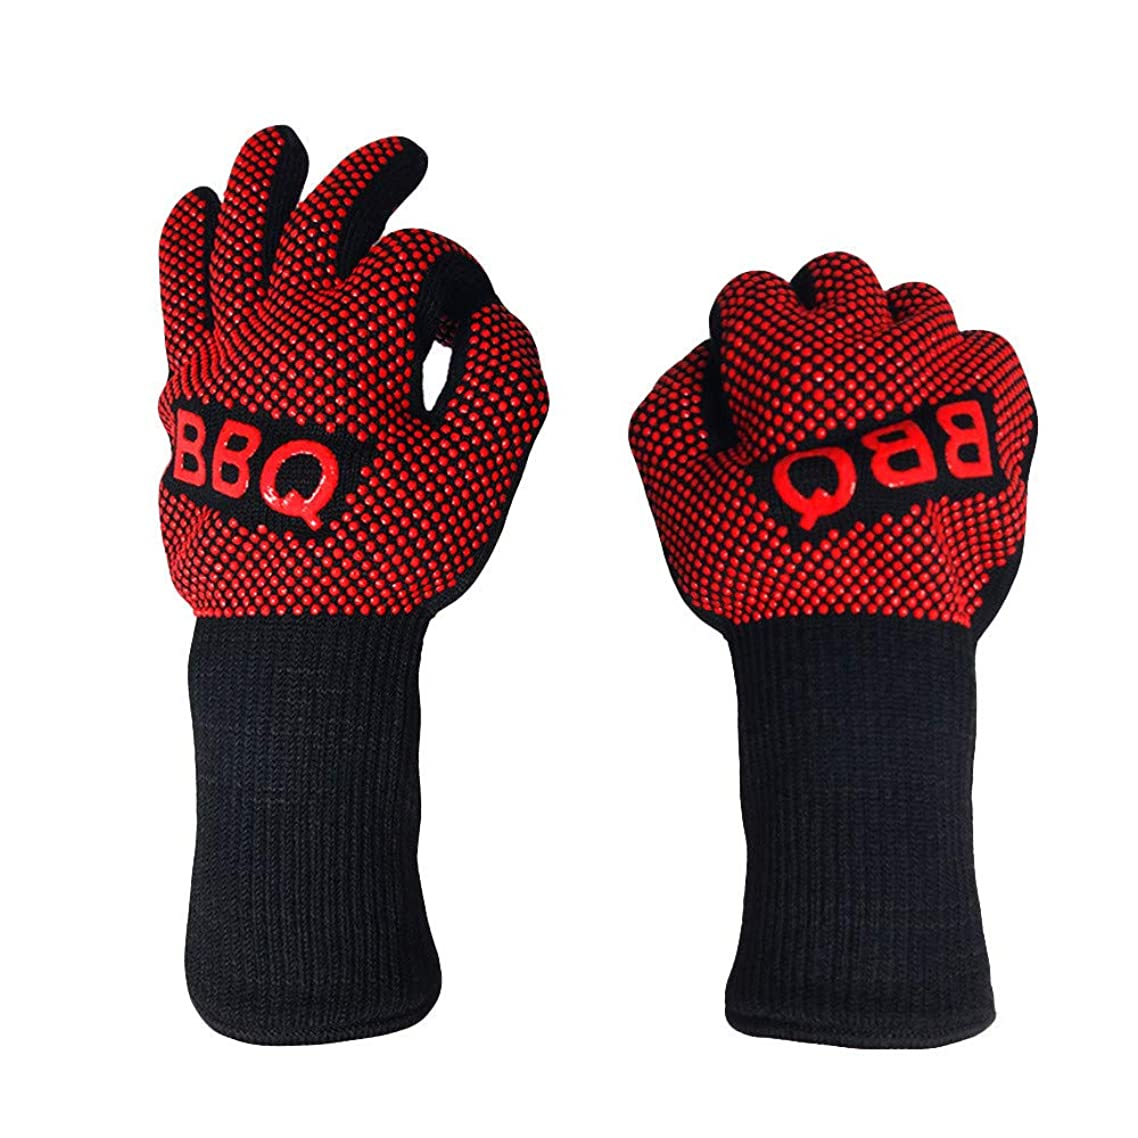 Togethor Hot BBQ Grilling Cooking Gloves Extreme Heat Resistant Oven Welding Gloves Silicone Non-Slip Cooking Hot Glove